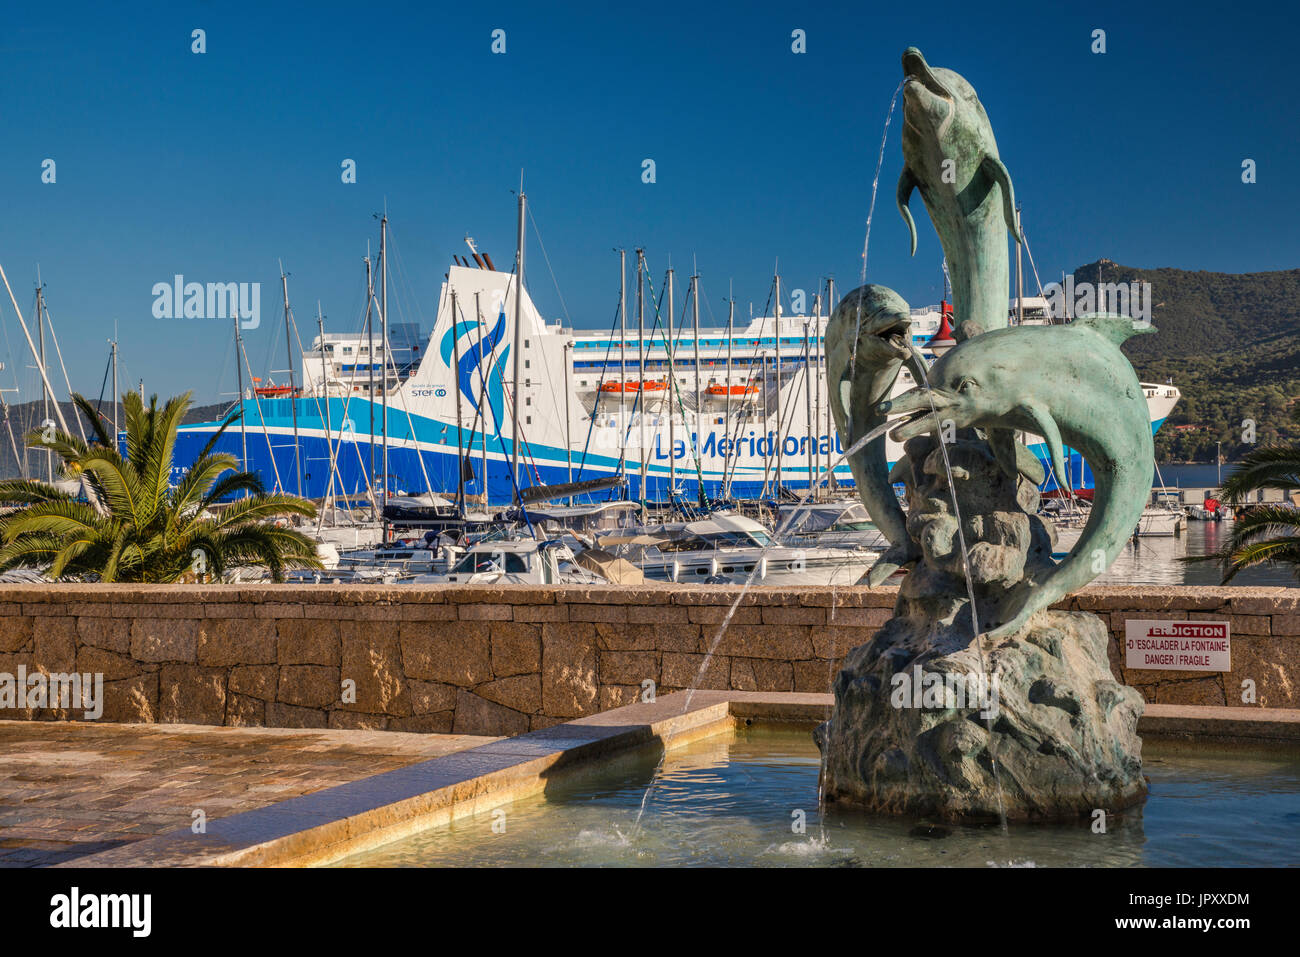 Dolphins fountain at waterfront, sailboats, M/F Kalliste ferry at pier behind, at Golfe de Valinco, Propriano, Corse-du-Sud, Corsica, France - Stock Image